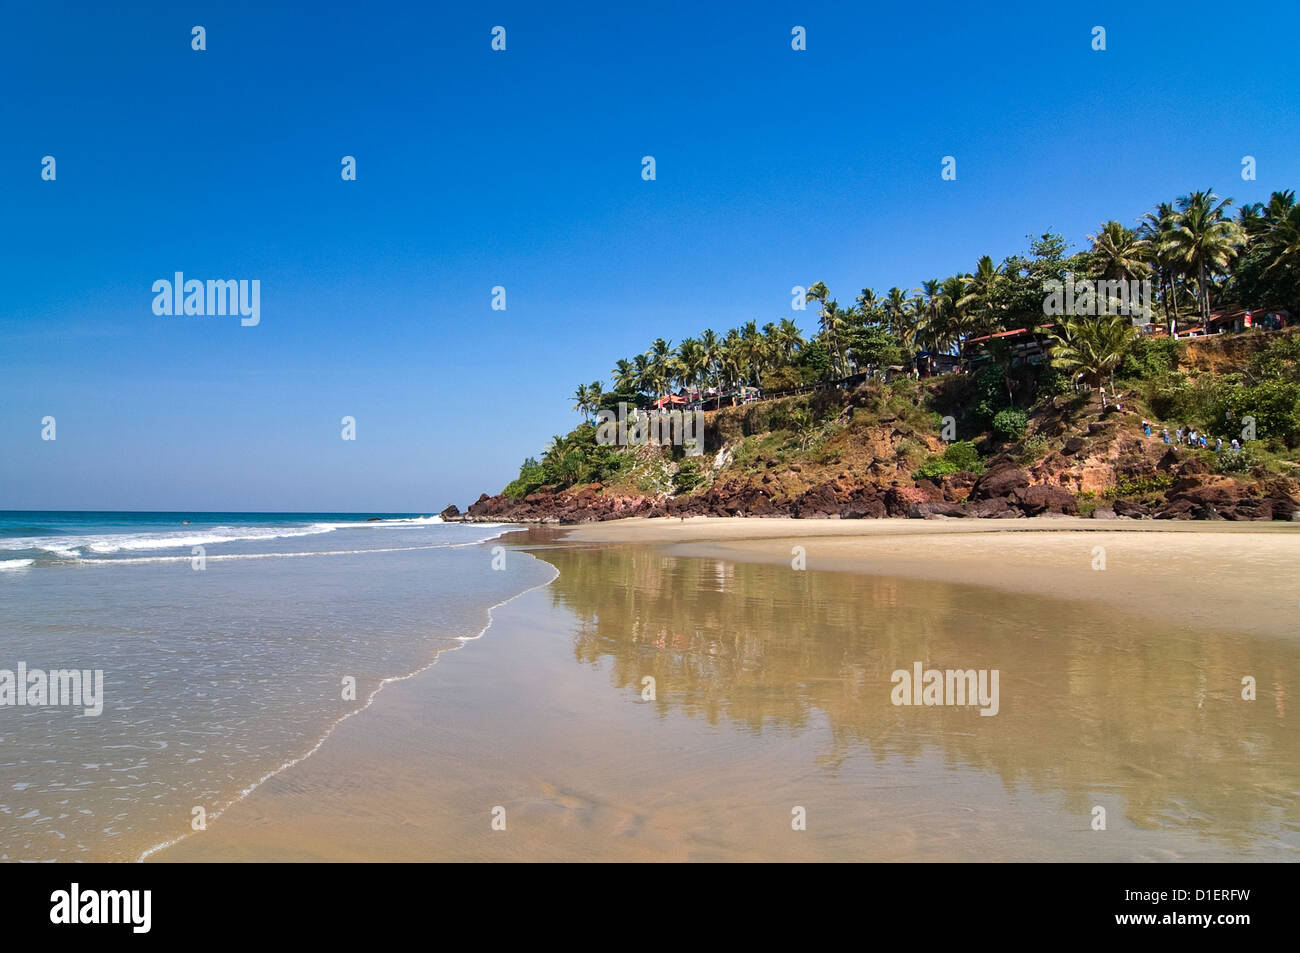 Horizontal view of the unique cliffs on Papanasam beach reflected in the wet sand at Varkala, Kerala. - Stock Image